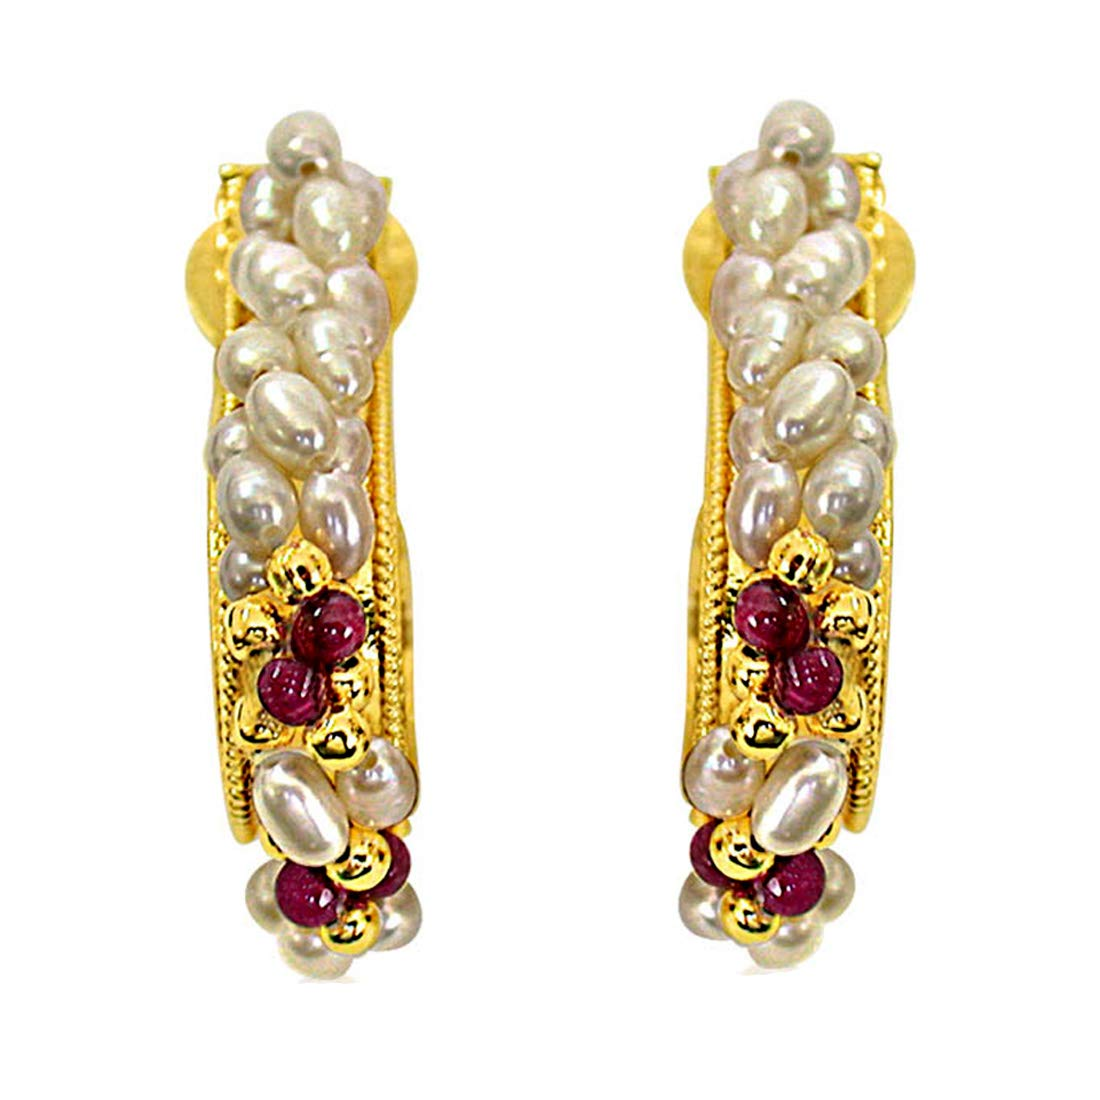 I Like You - Real Rice Pearl & Red Garnet Twisted Bali Style Earrings for Women (SE25)